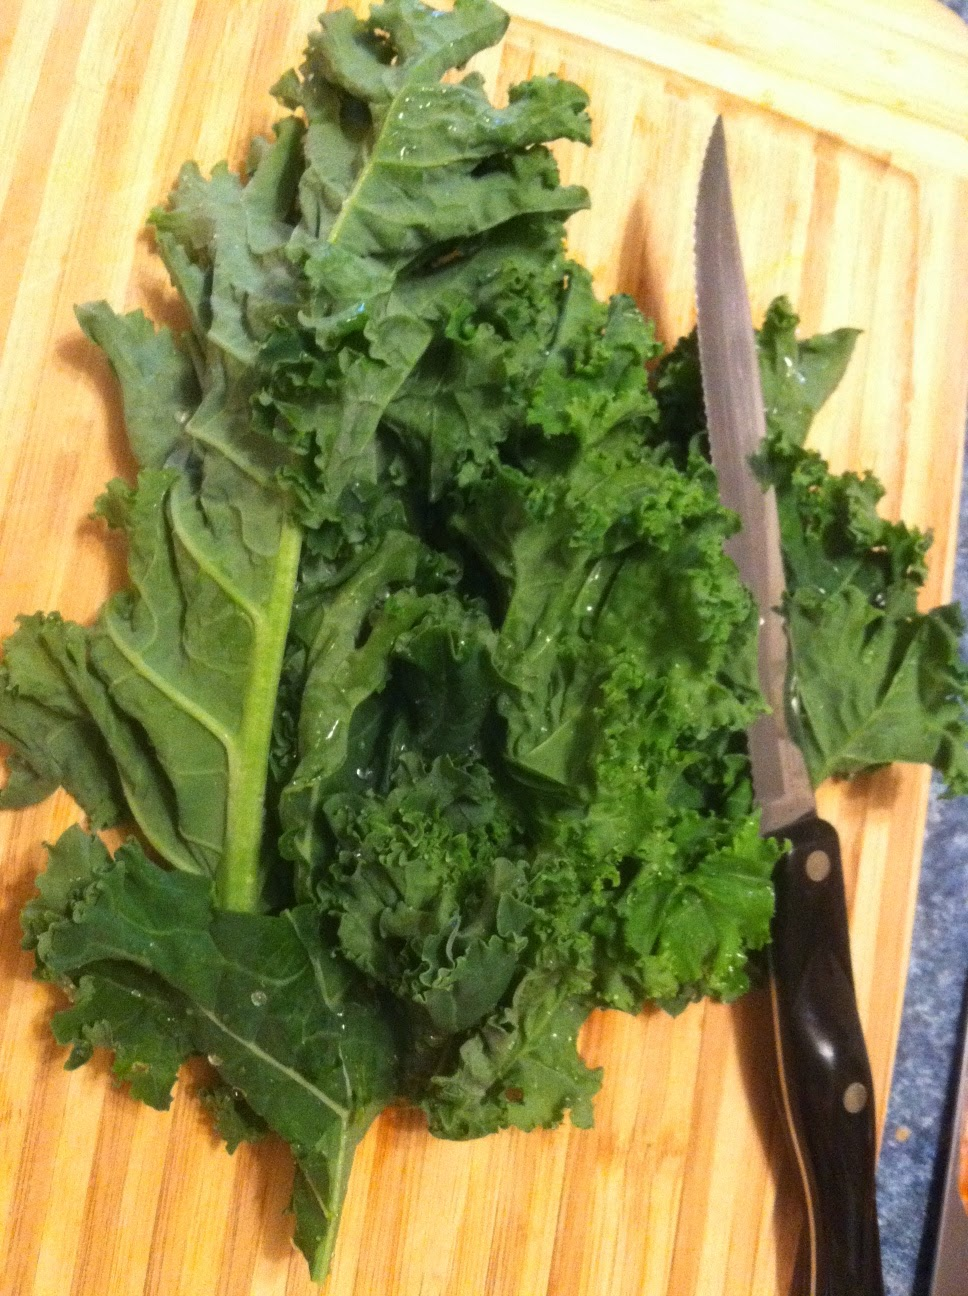 kale ready to be prepped for pesto.